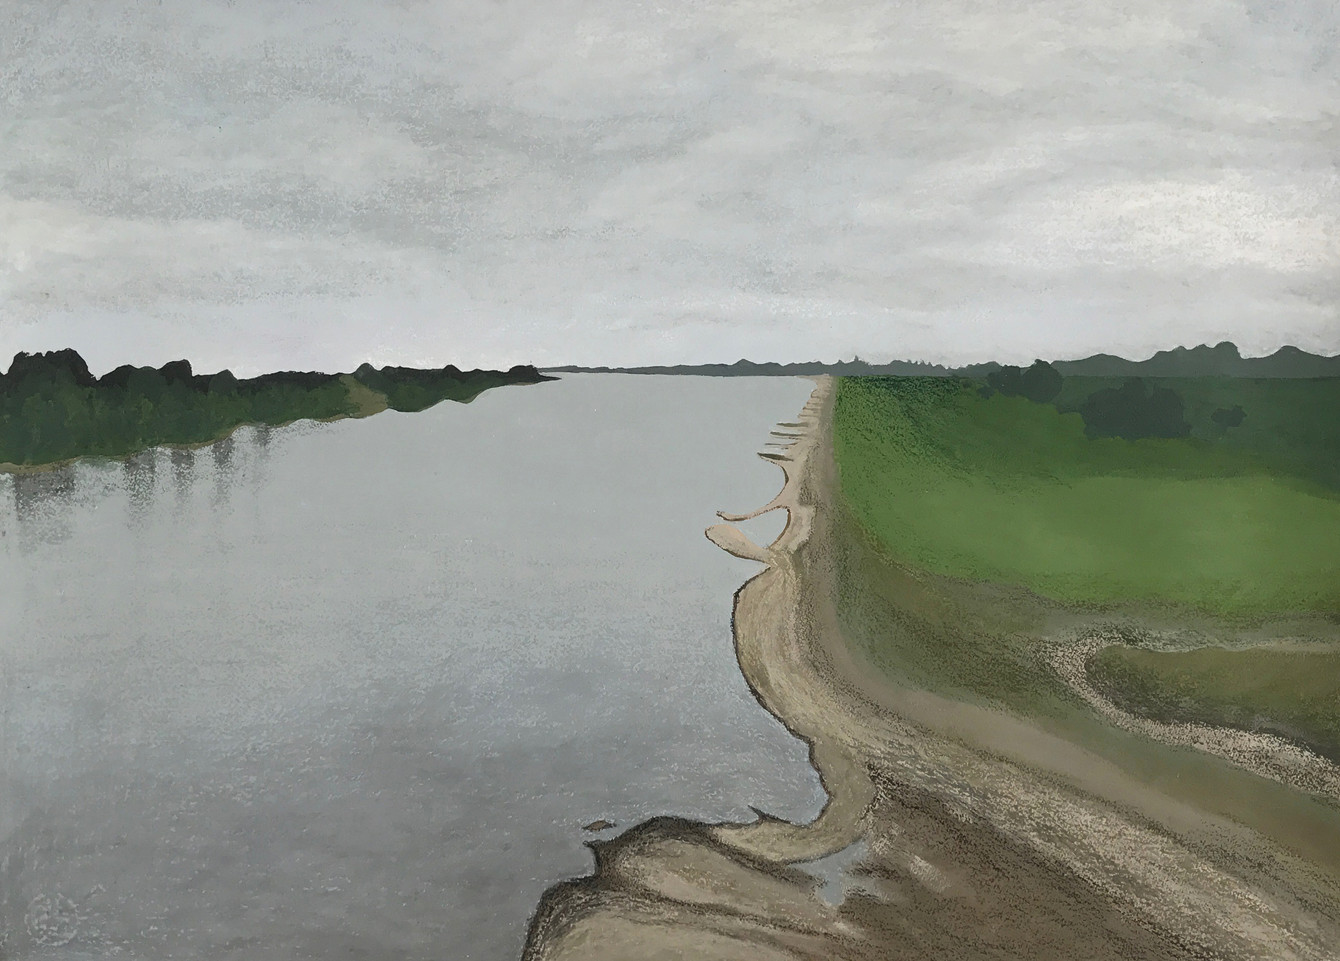 The Rhine‭, 2017‭, ‬acrylic‭ ‬&‭ ‬oil pastels on paper, 60x80 cm